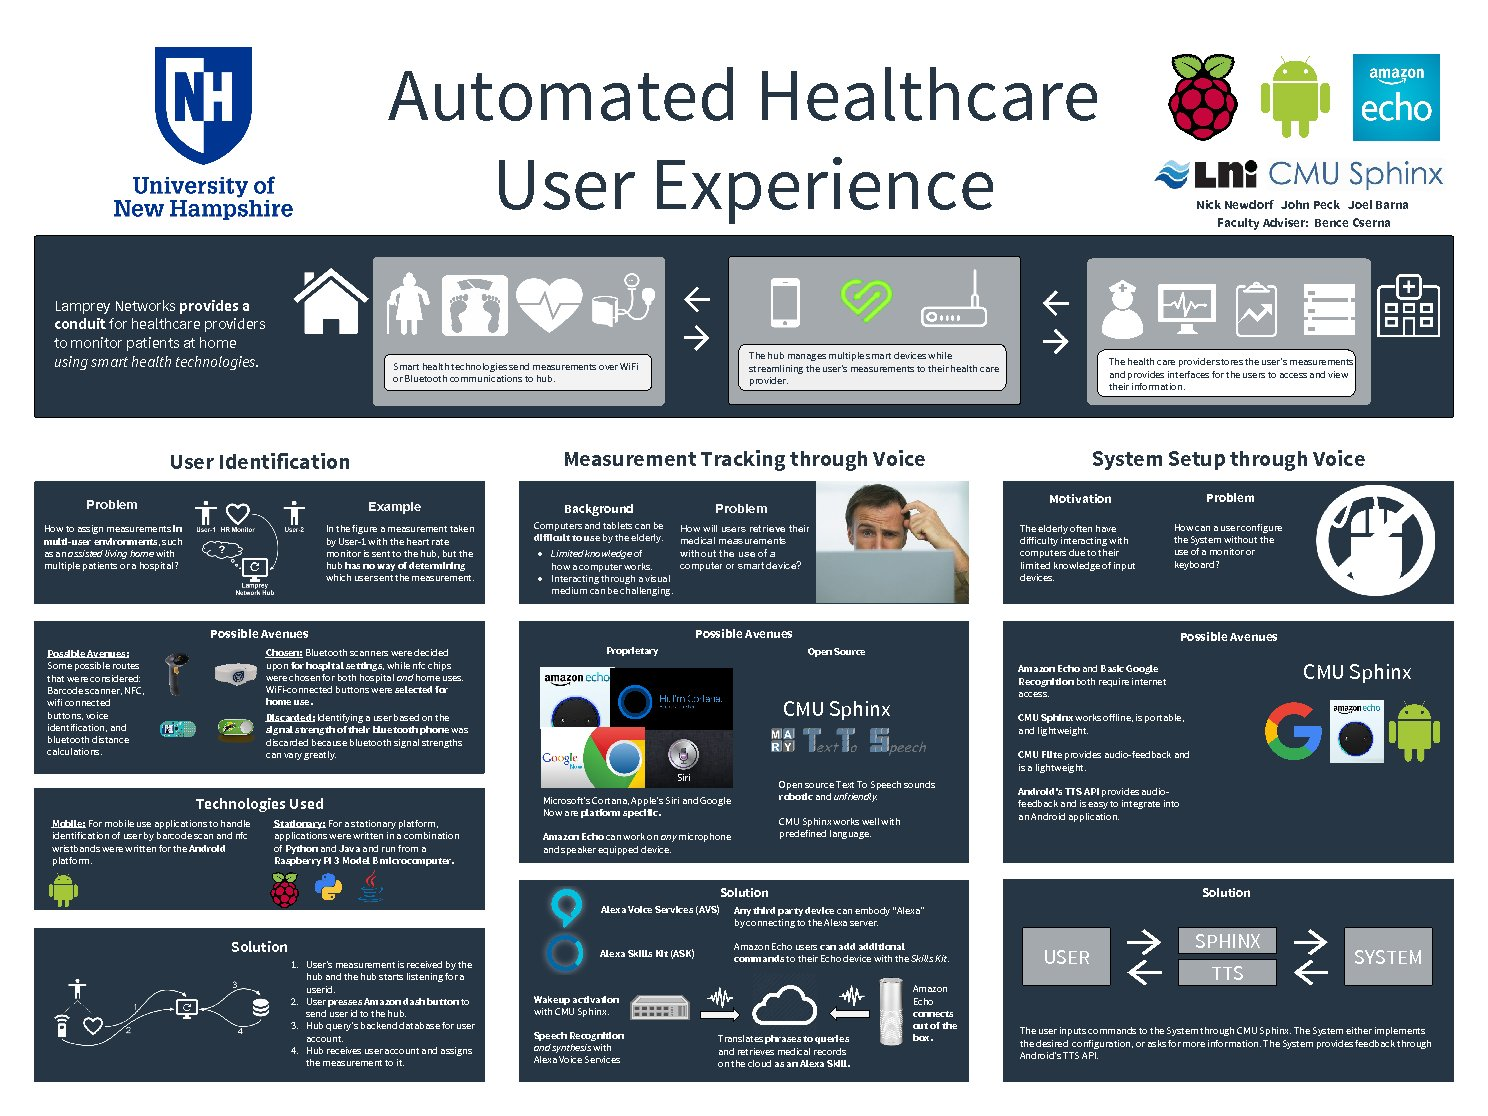 Automated Healthcare User Experience by jtf57